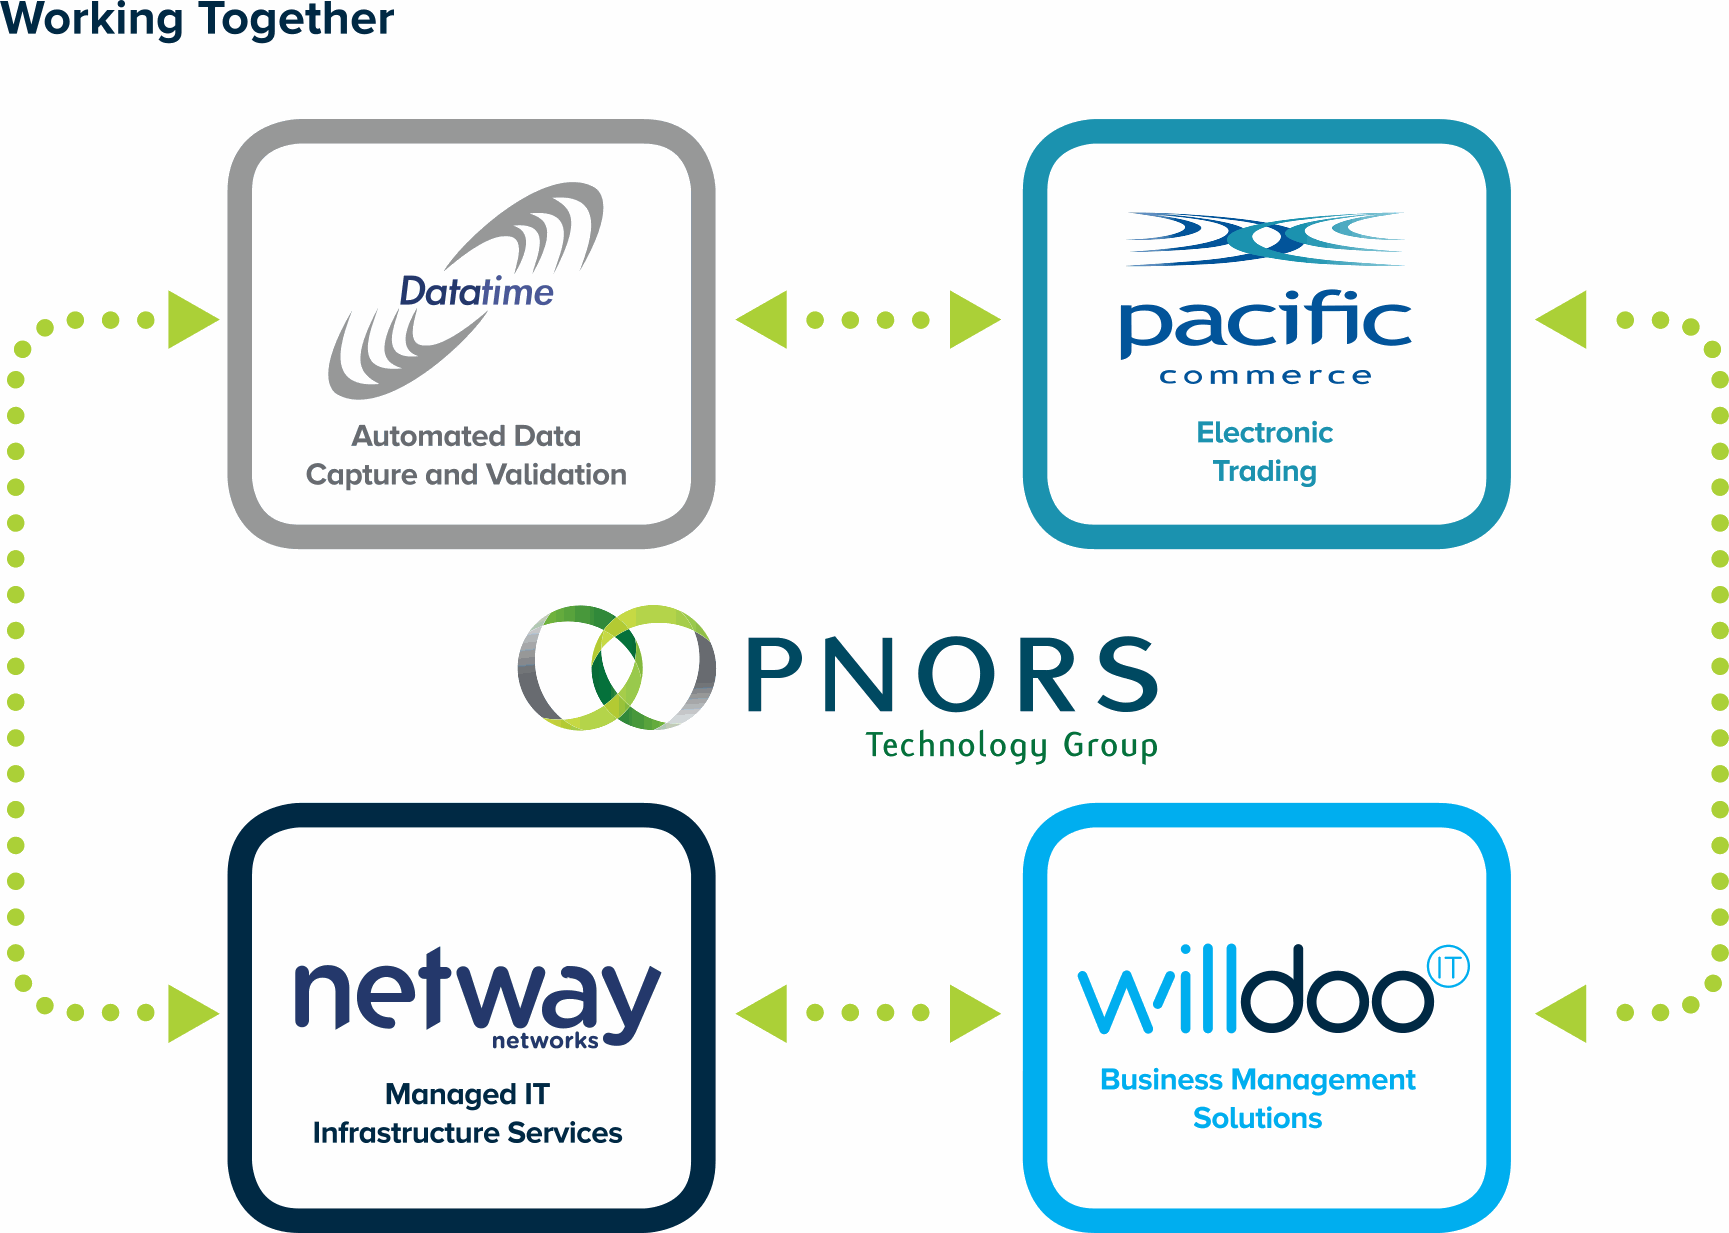 PNORS Technology Group